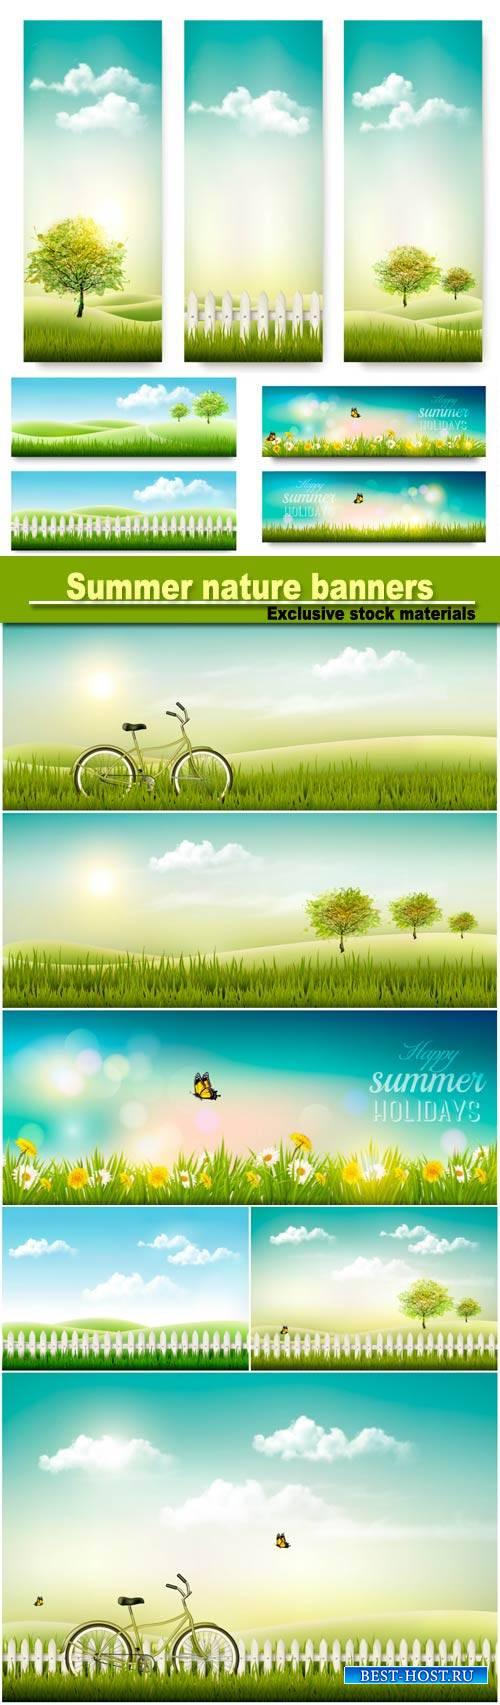 Summer nature banners with green trees and sun